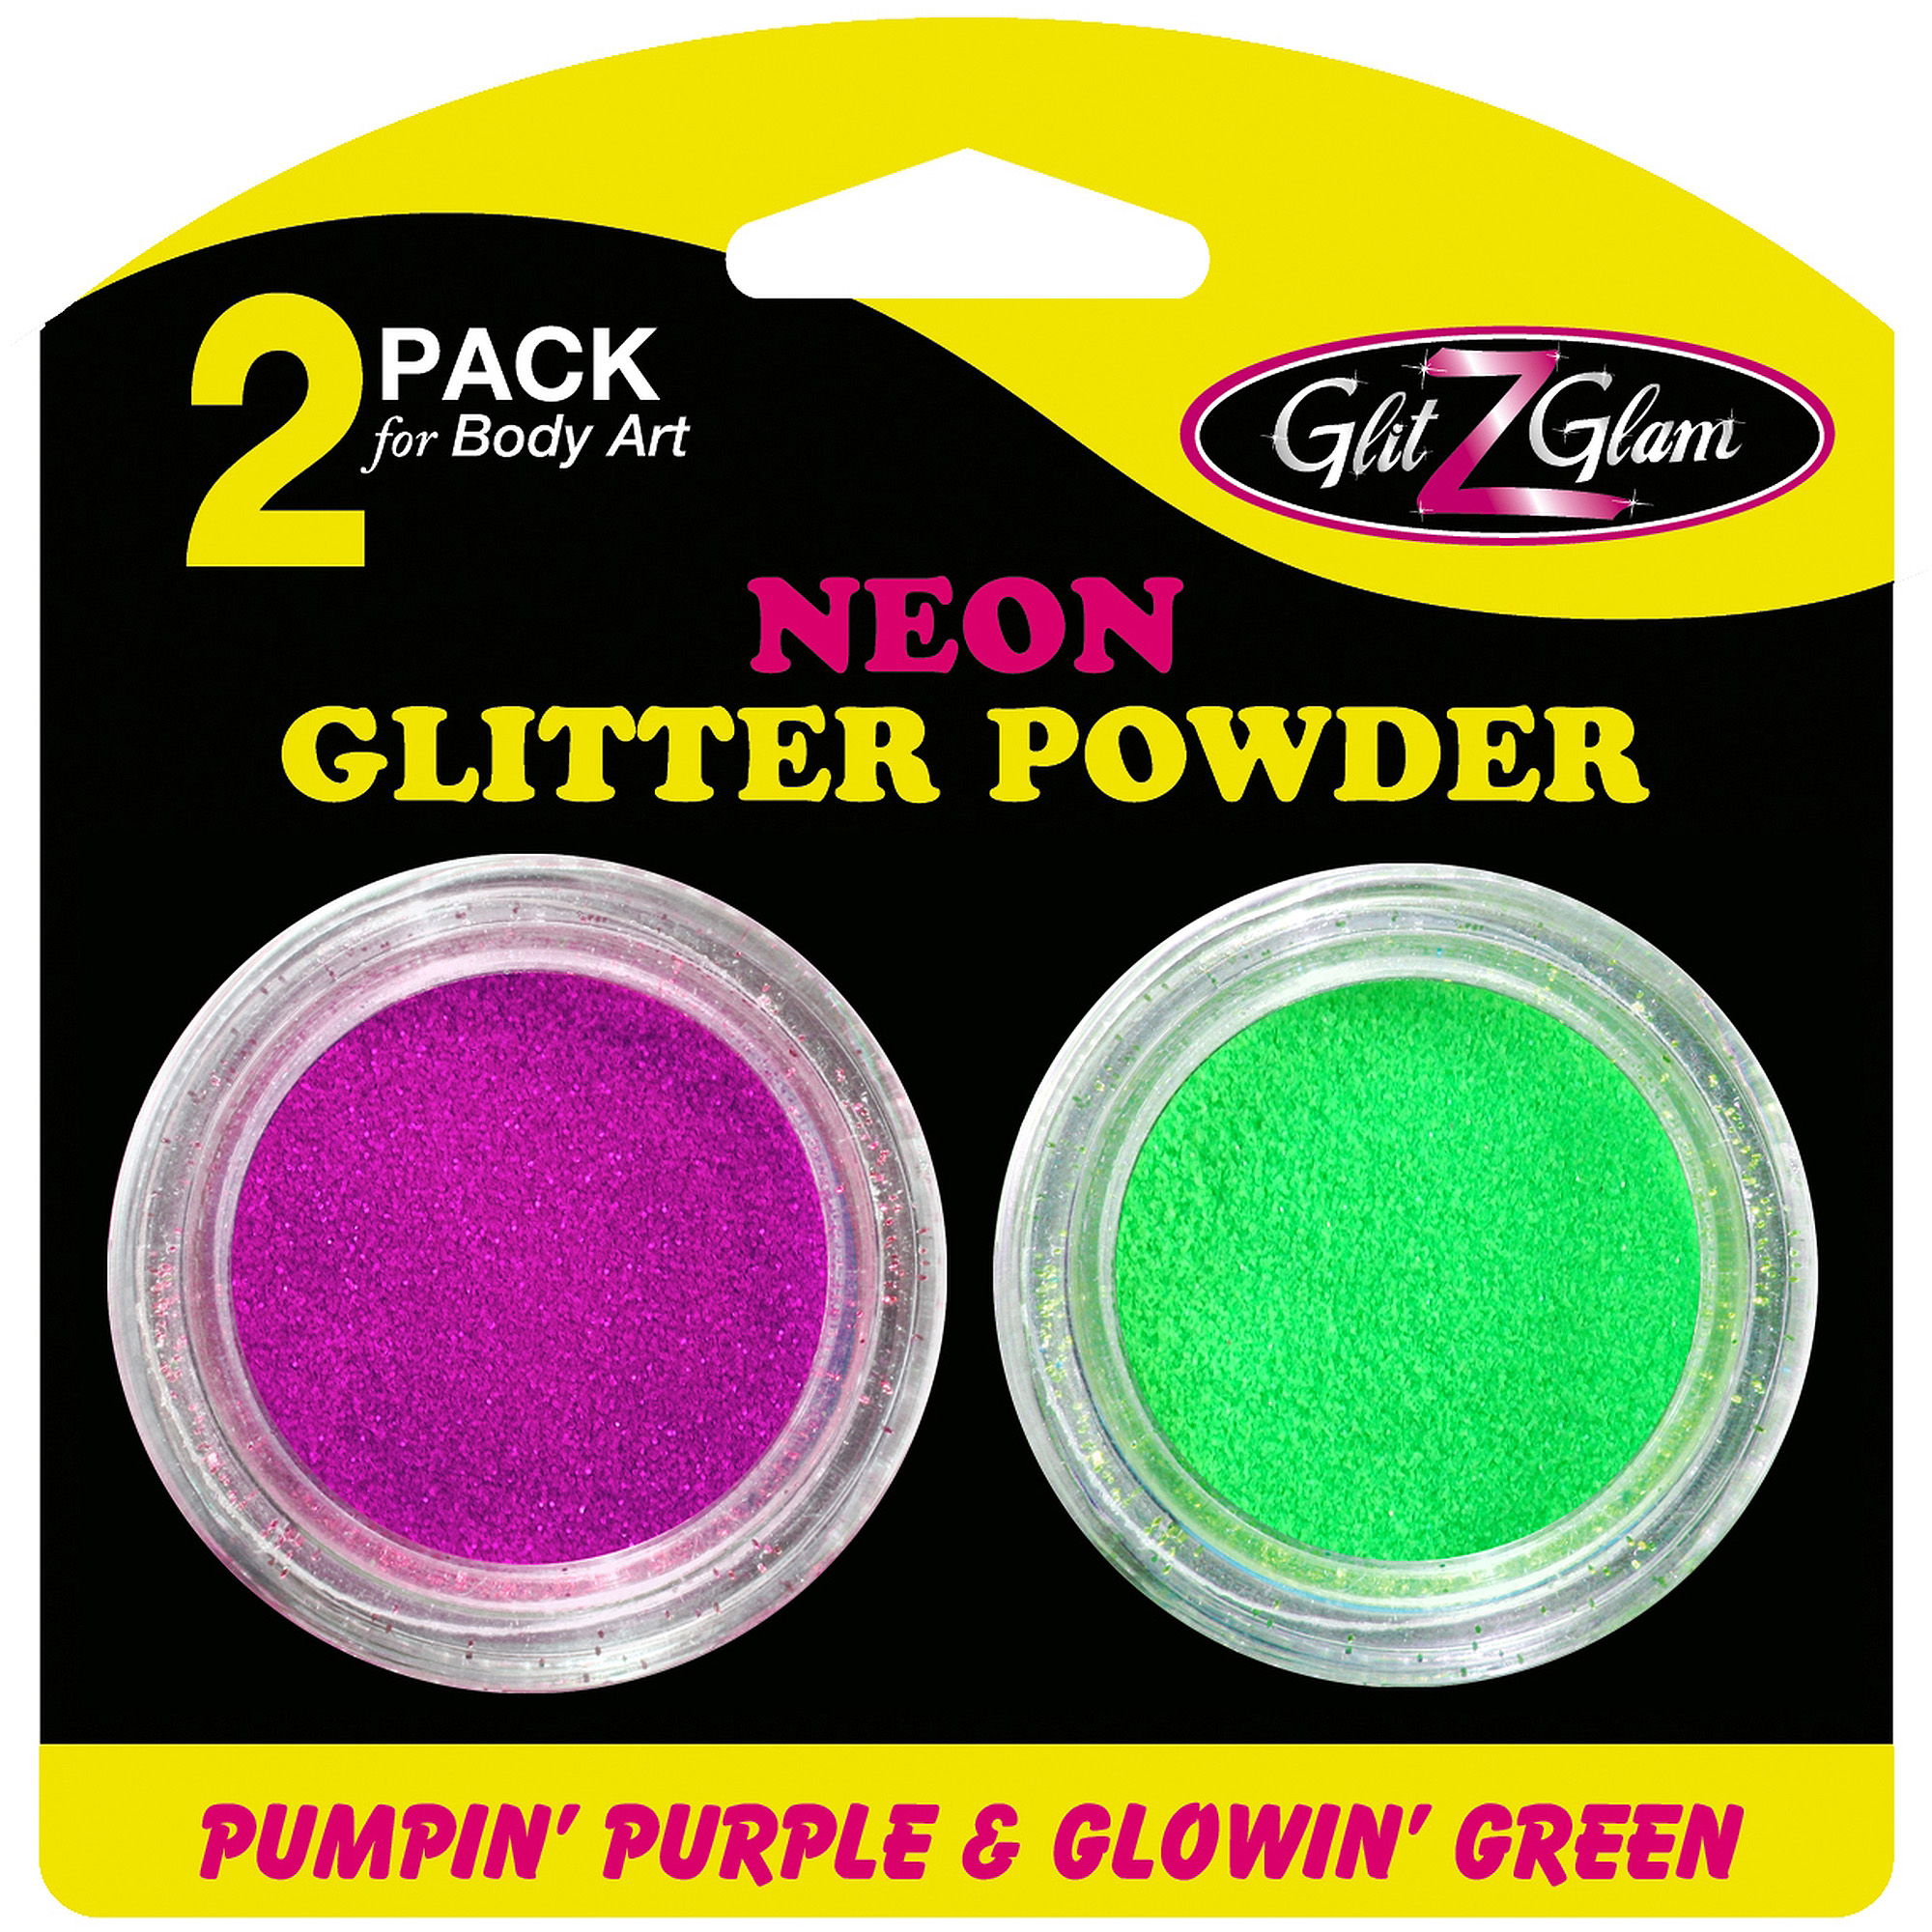 GlitZGlam Glitter Neon Pumpin' Purple and Glowin' Green for Glitter Tattoos and Body Art, 2pk